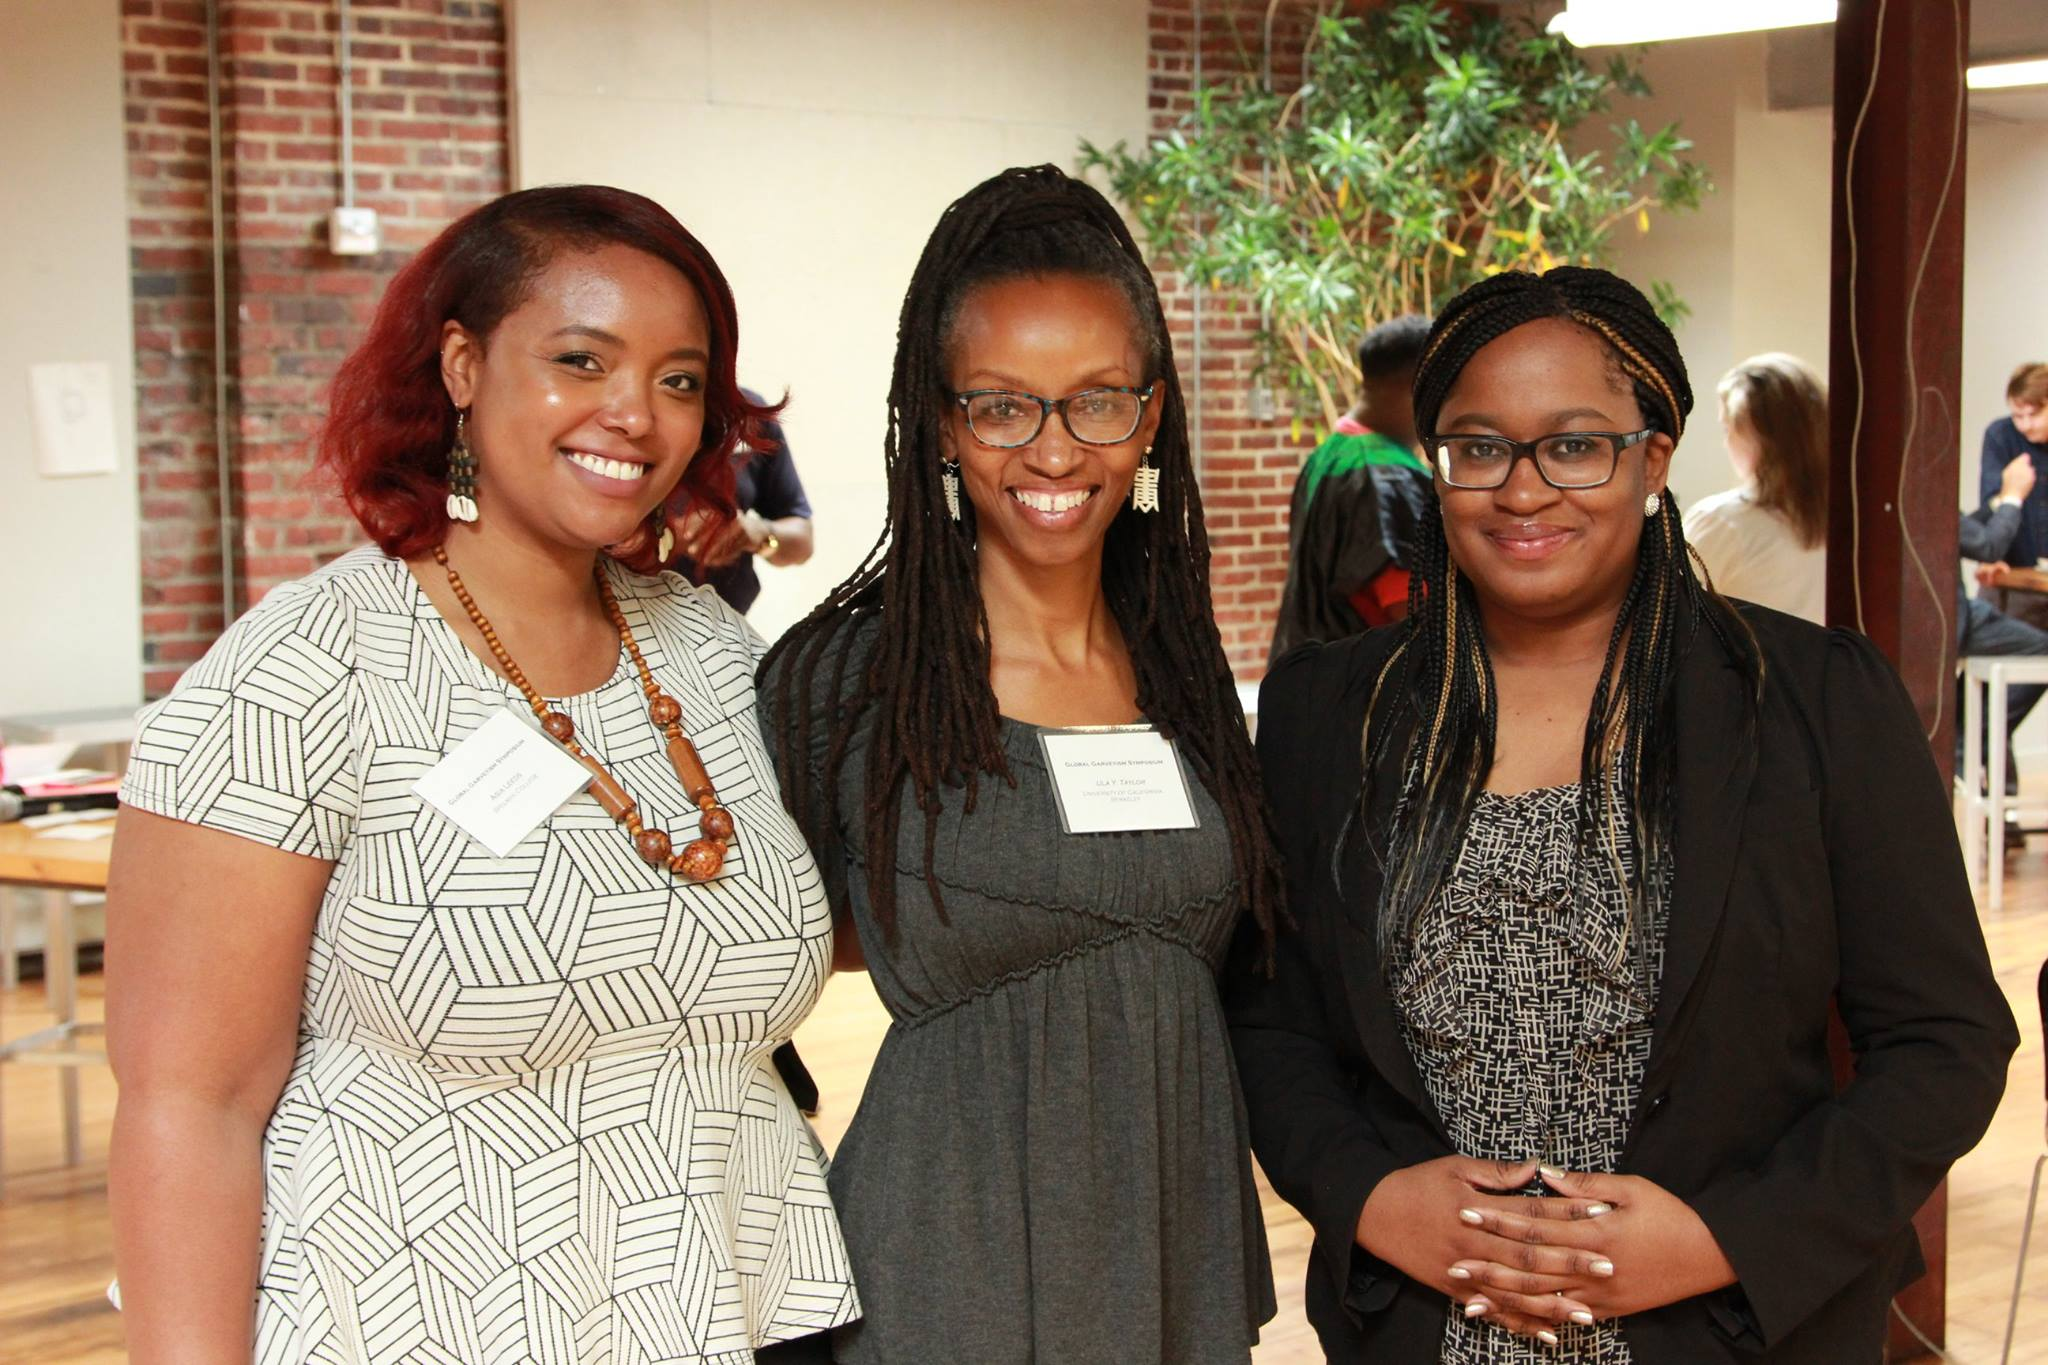 Asia Leeds, Ula Taylor and Keisha Blain at the 2016 Global Garveyism Conference at Virginia Commonwealth University (Image Credit: Chioke A. Ianson)